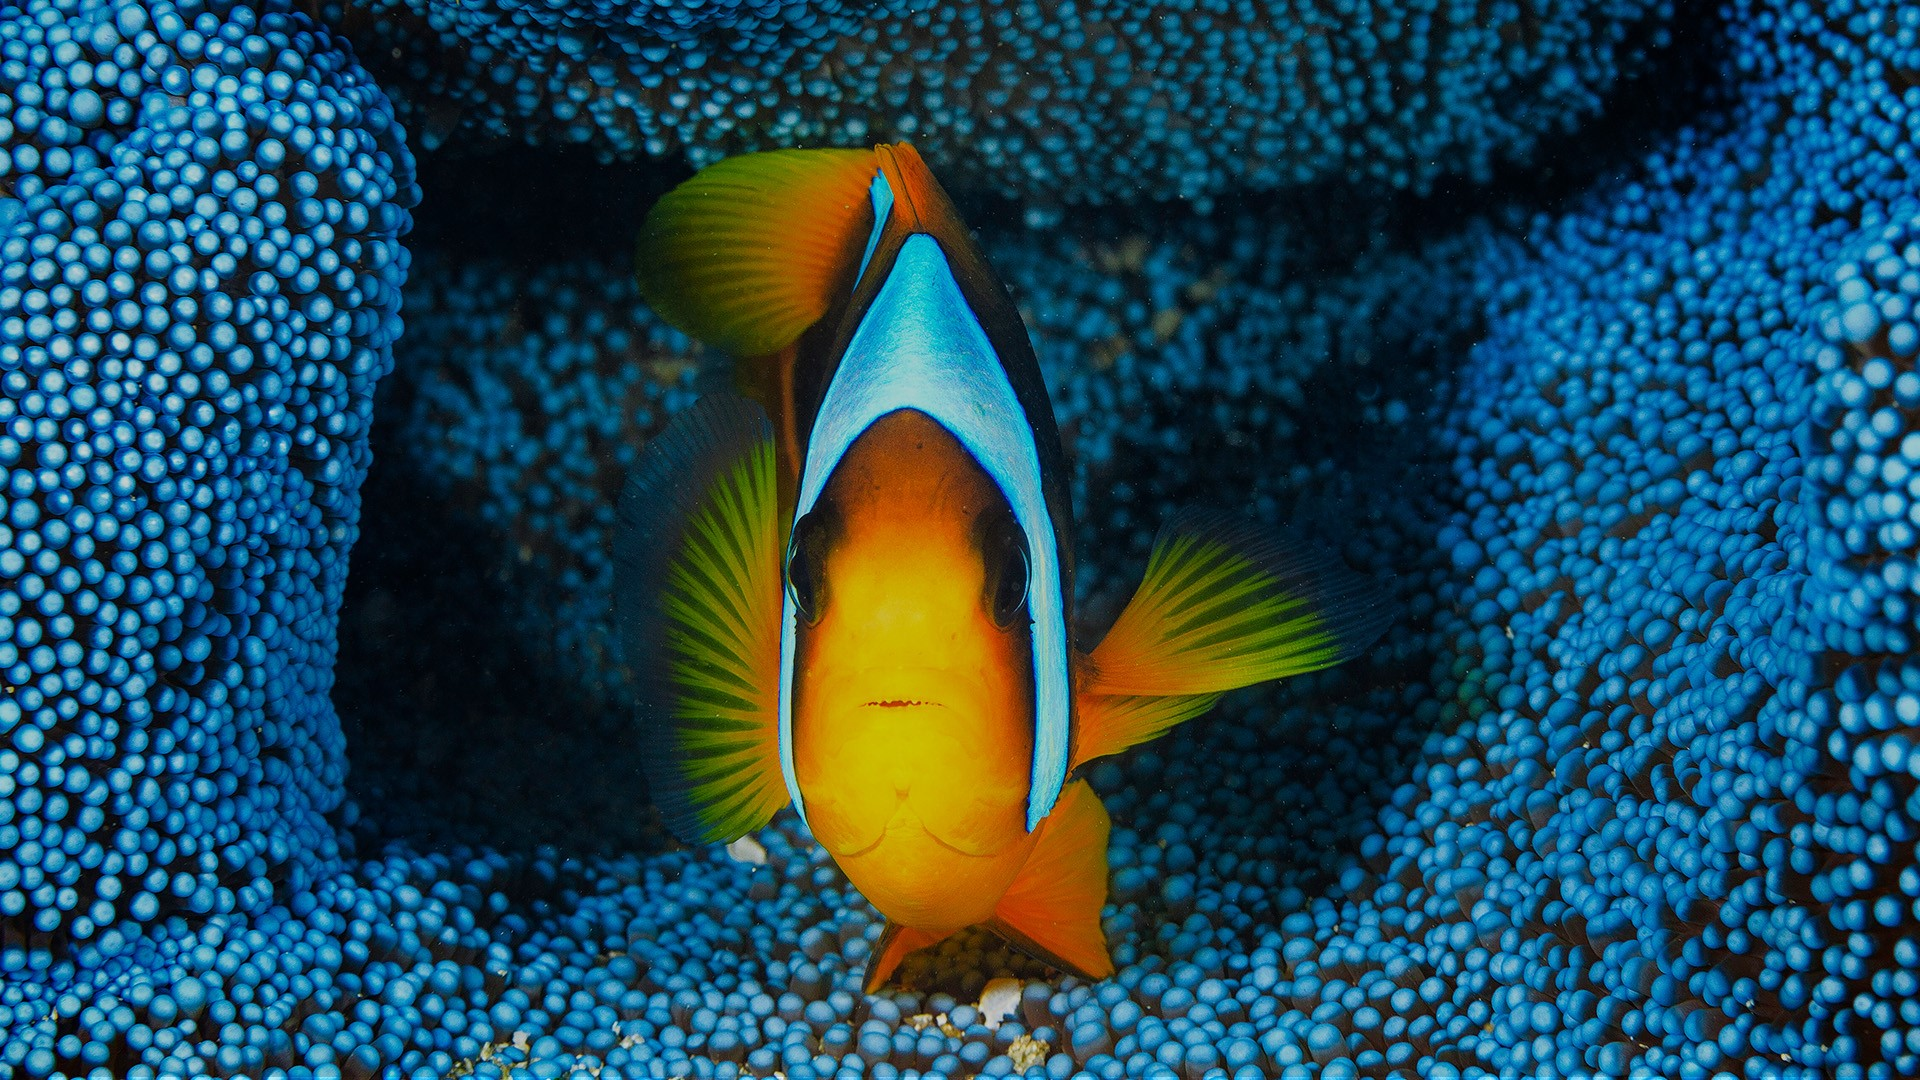 General 1920x1080 fish underwater animals colorful